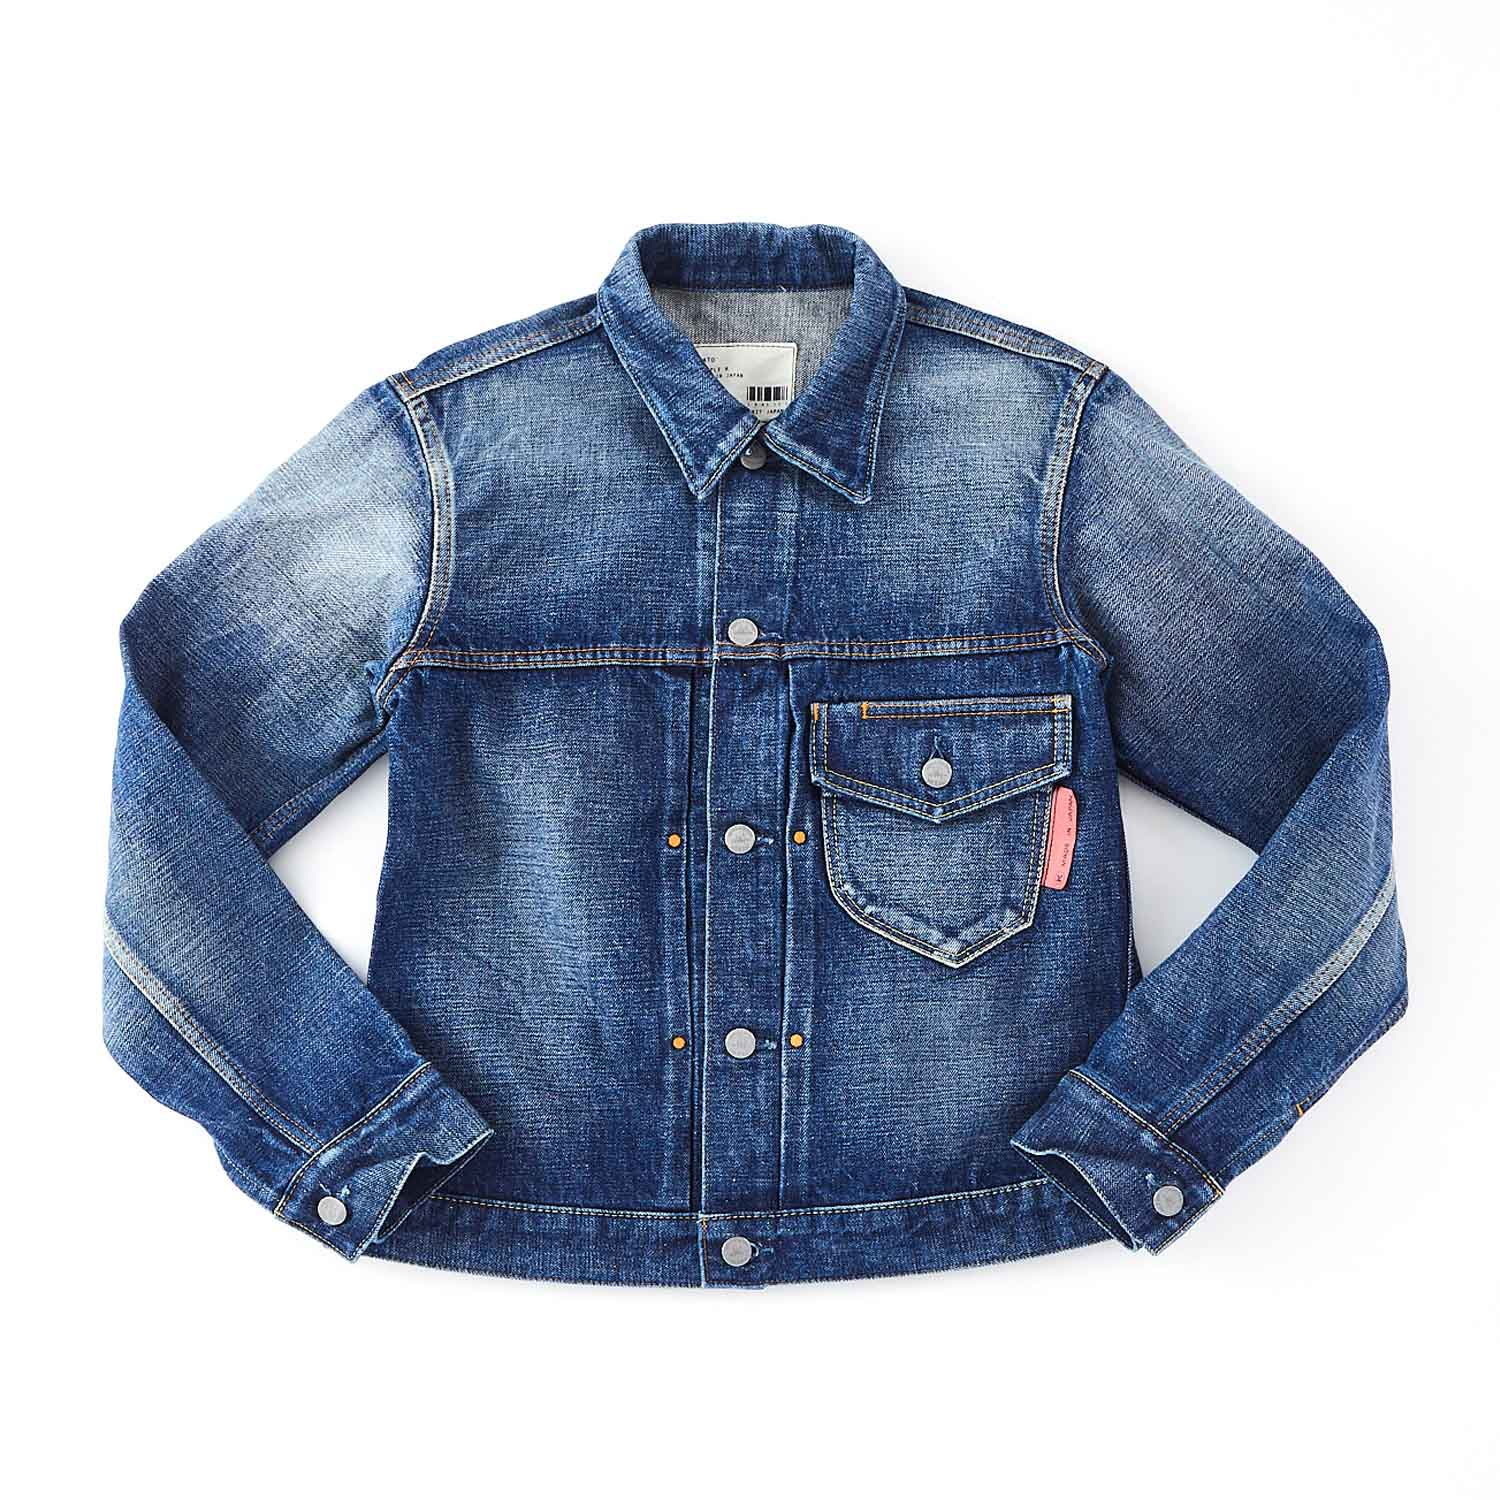 Vintage Denim Jacket AAA